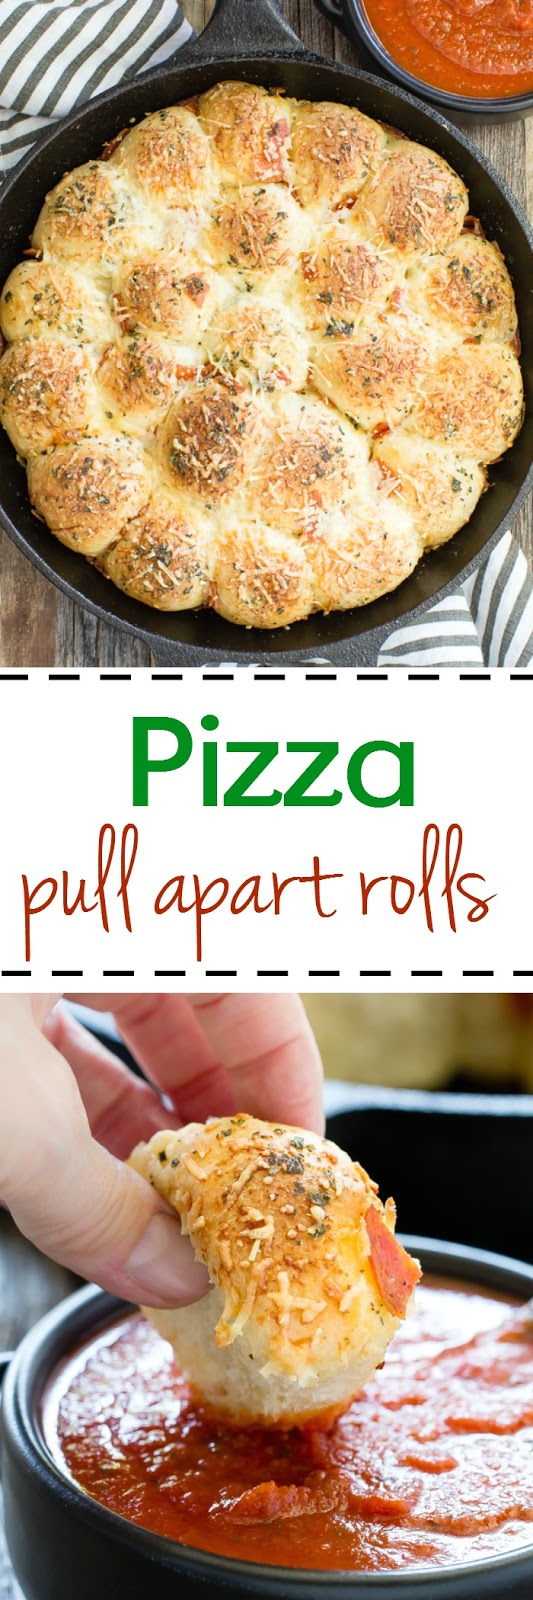 Pizza Pull Apart Rolls with Sauce